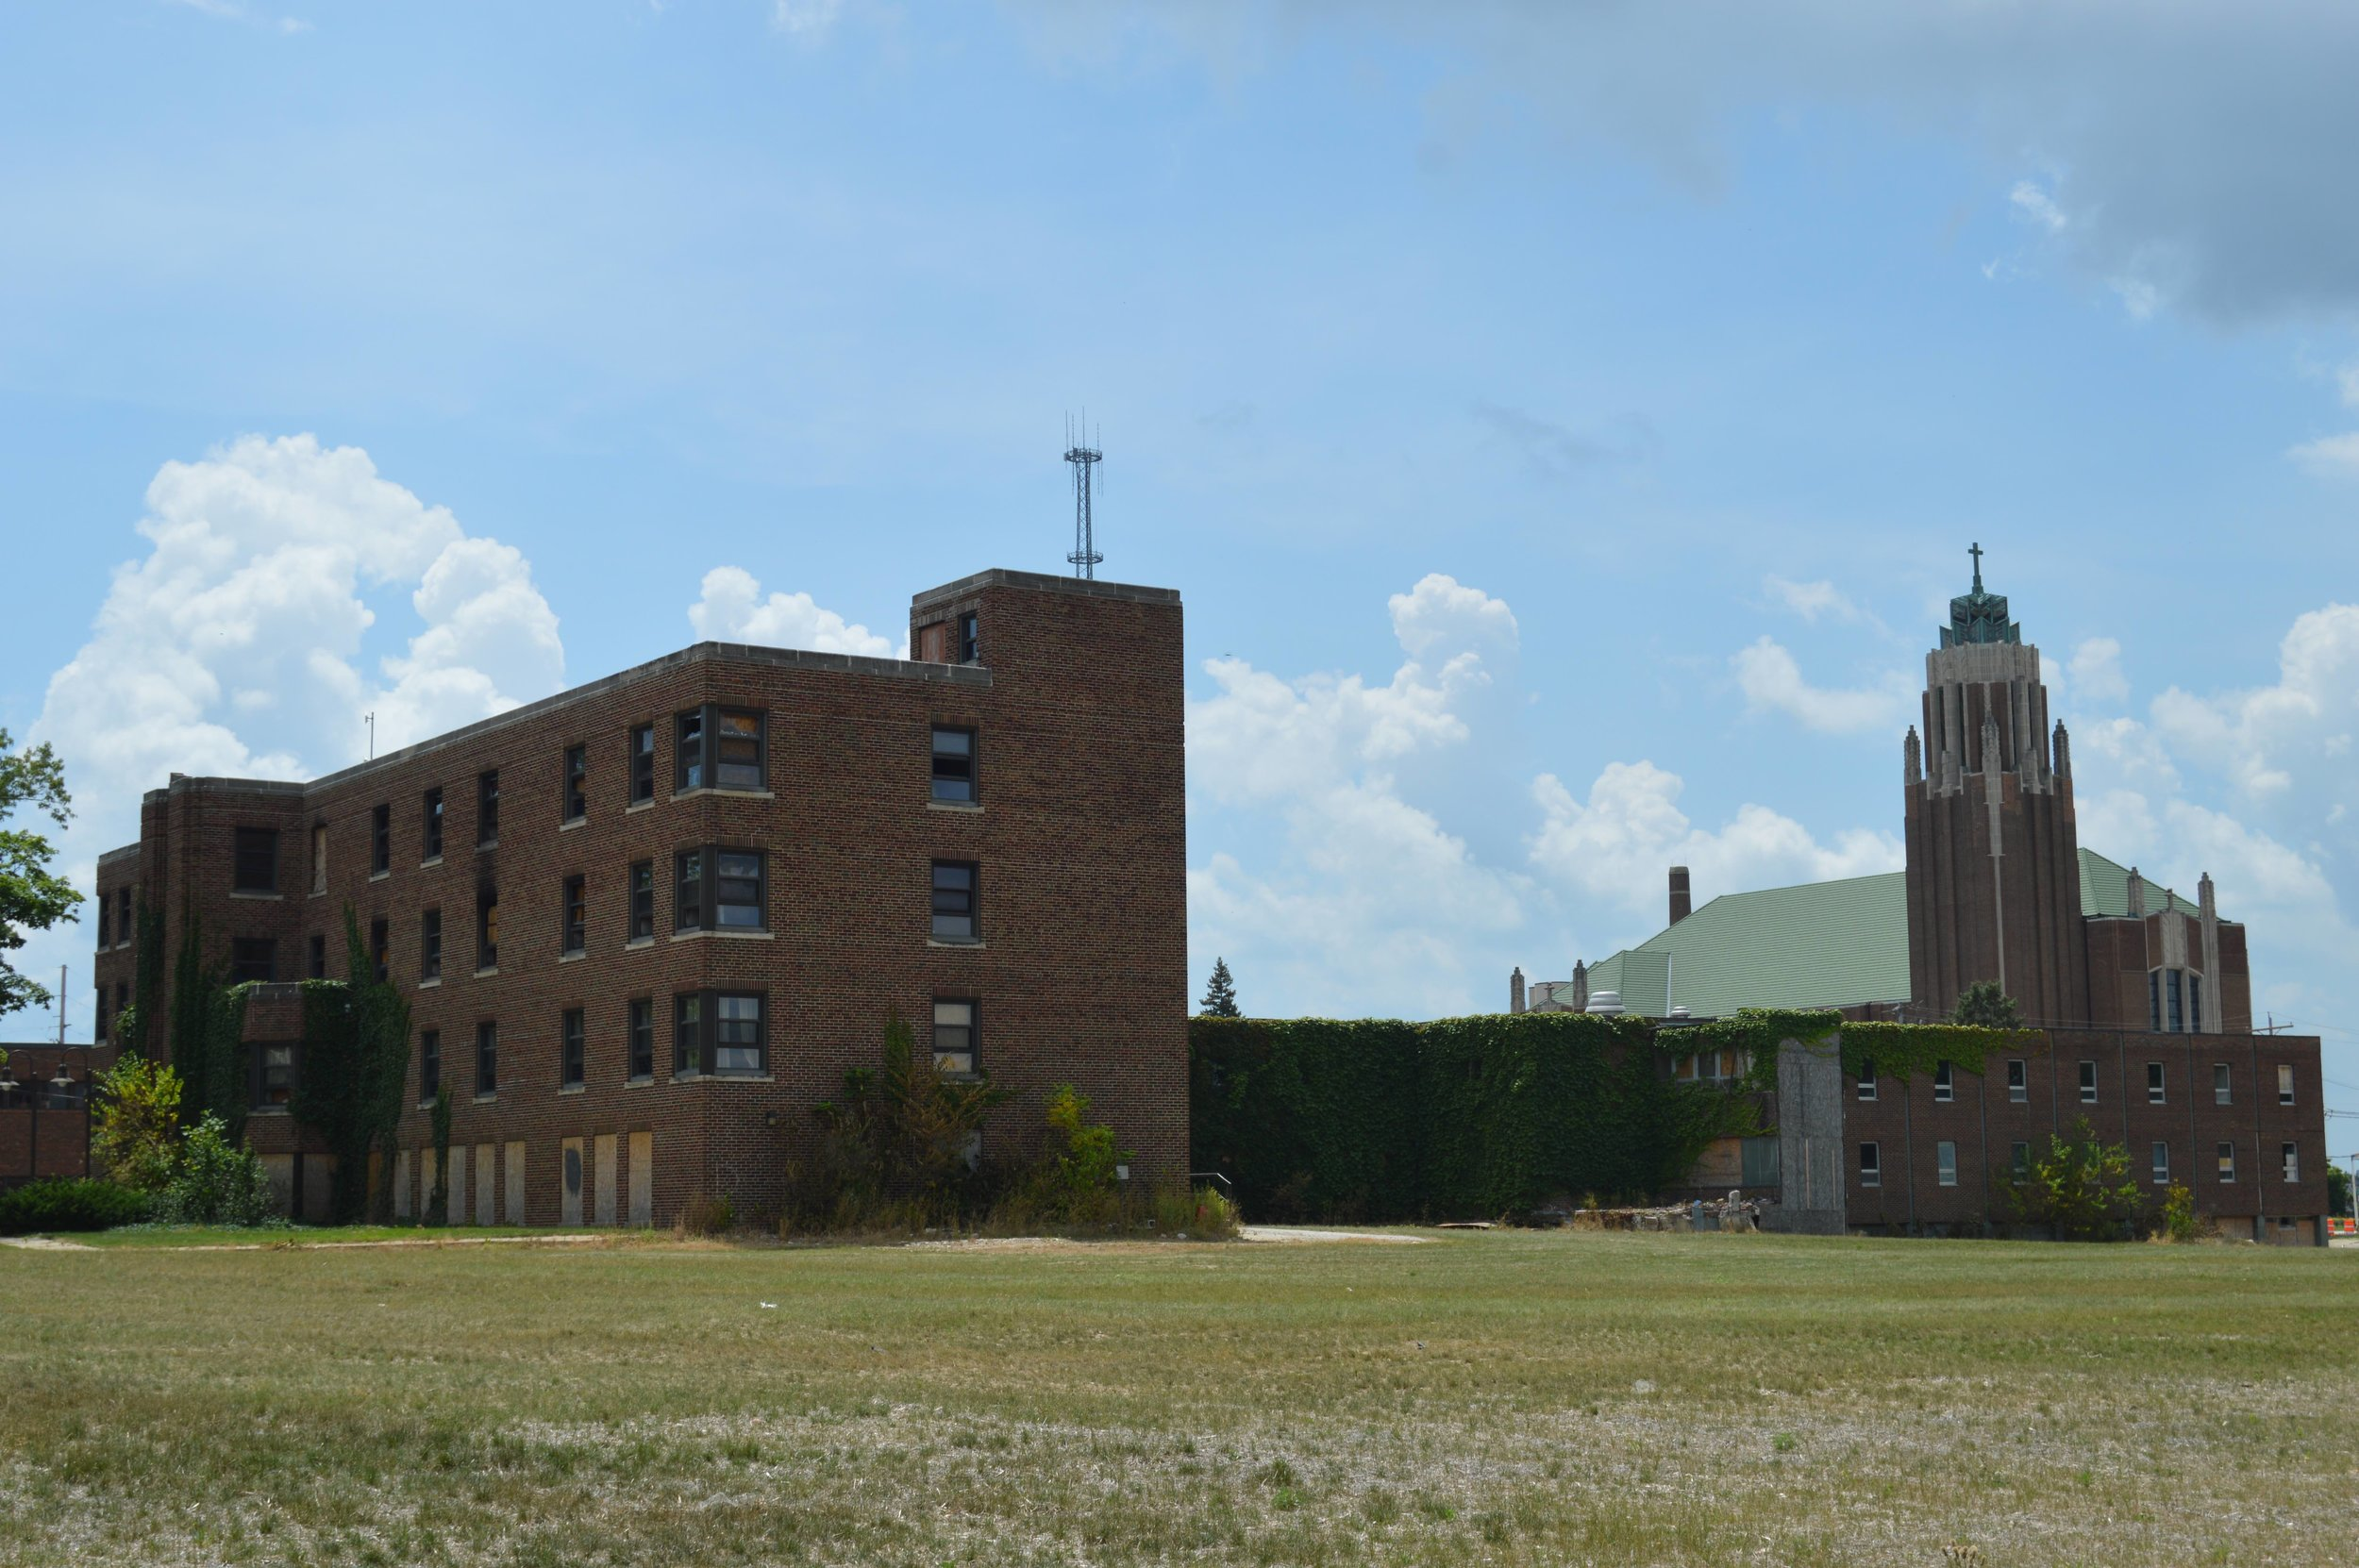 The  4 acres along North Main Street the City of Bloomington and Illinois Wesleyan University plan to market for mixed use development includes the former Mennonite Hospital building, (Photo: Christian Prenzler/AdaptBN)